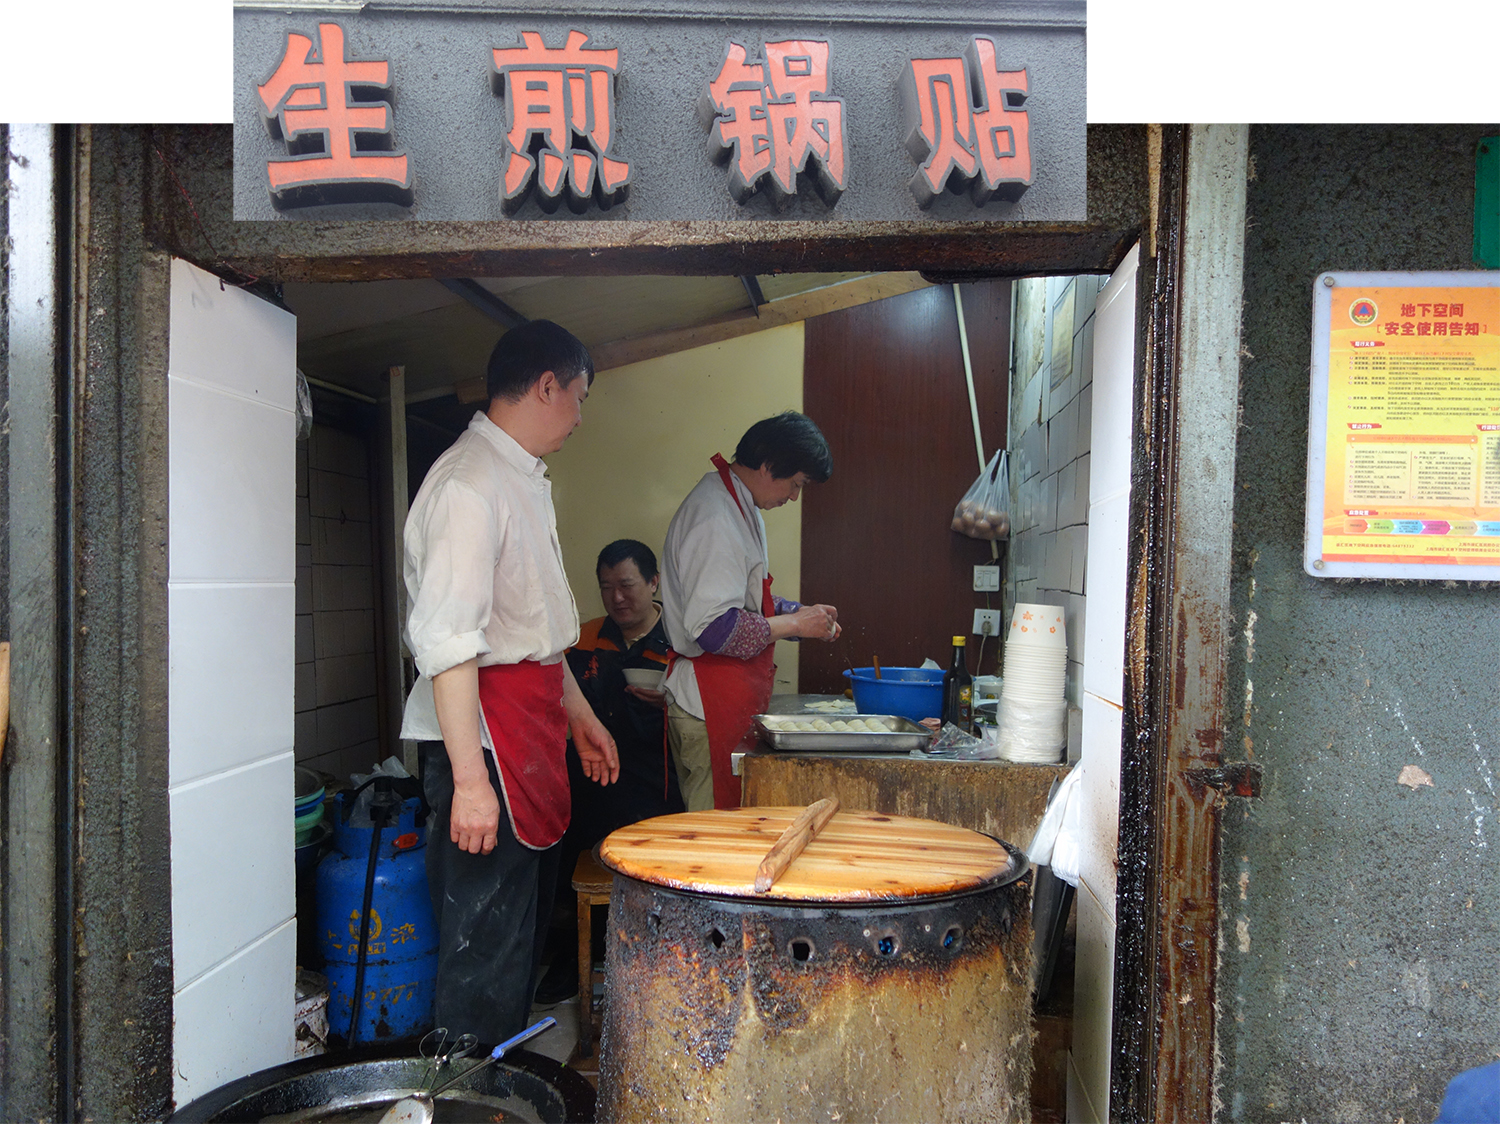 My favorite breakfast place - a hole in the wall dumpling store run by 2 brothers.